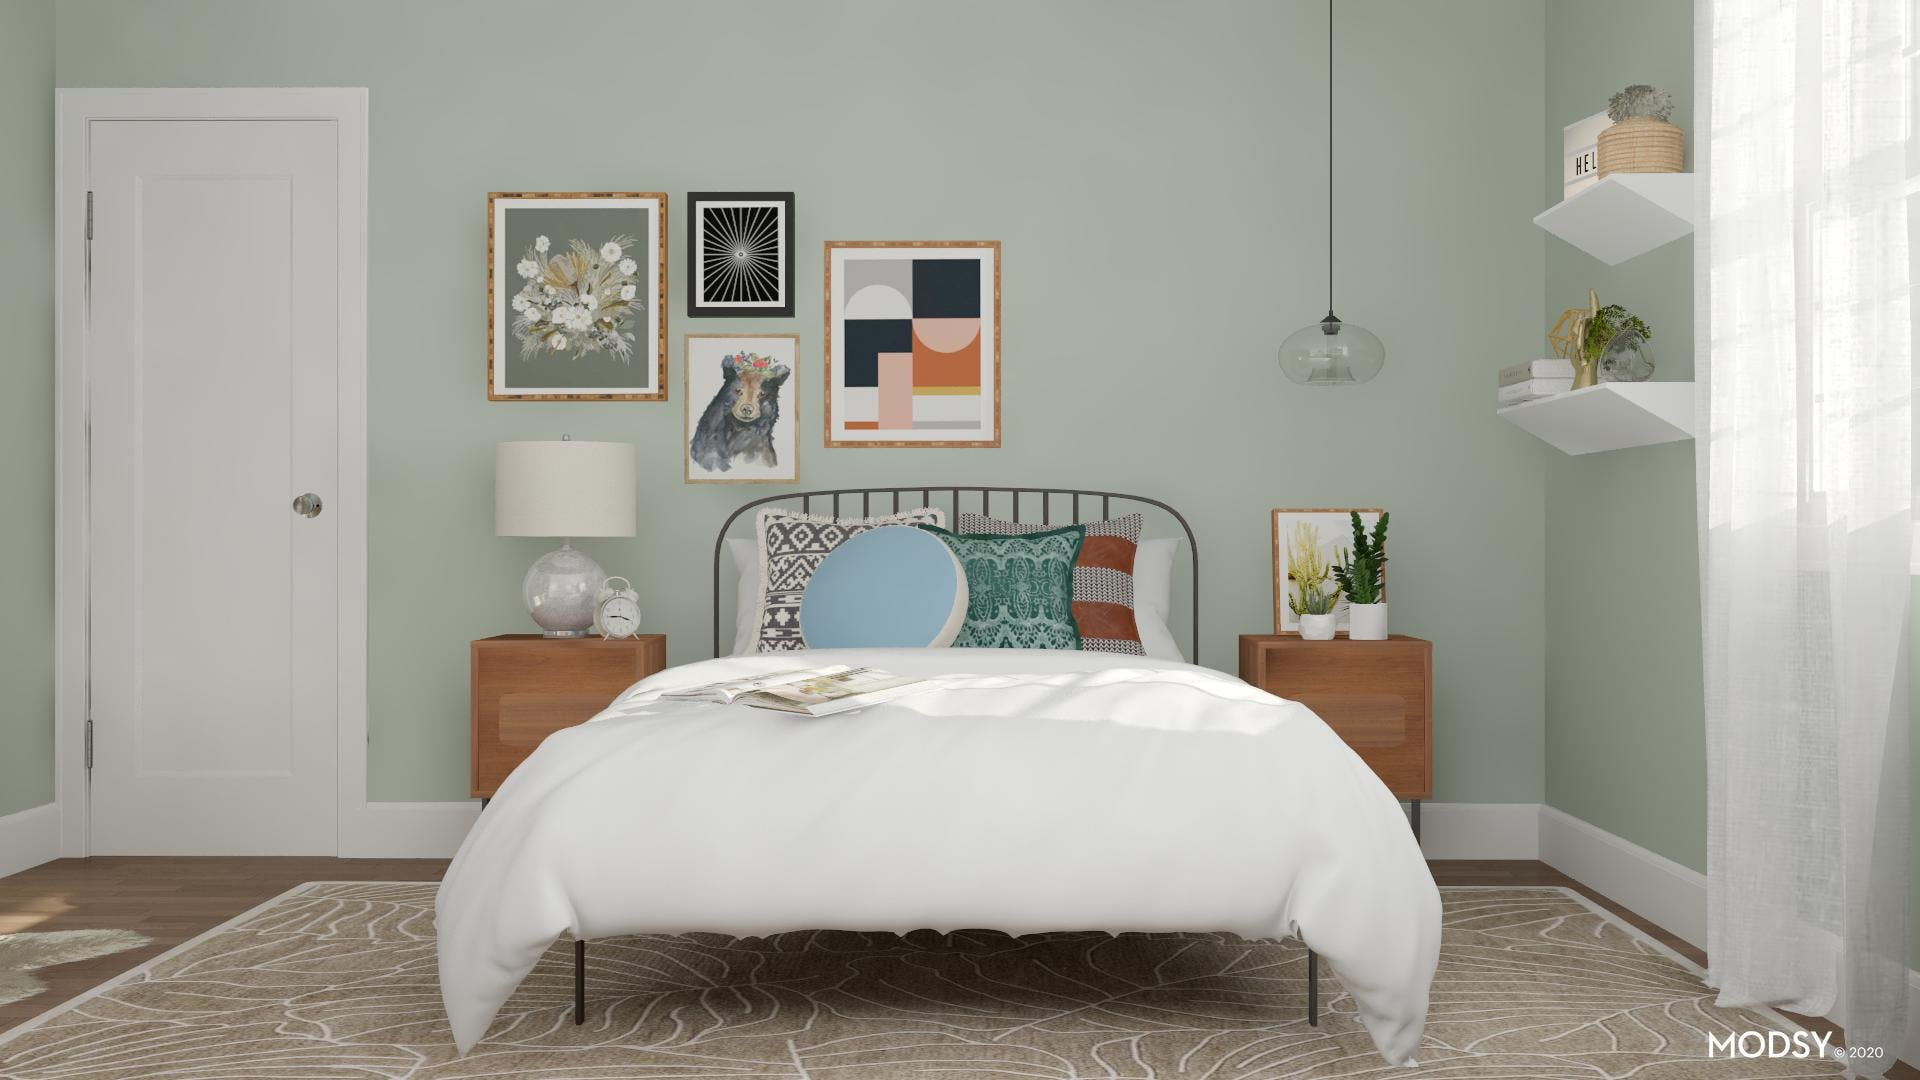 Small Eclectic Bedroom in Earth Tones